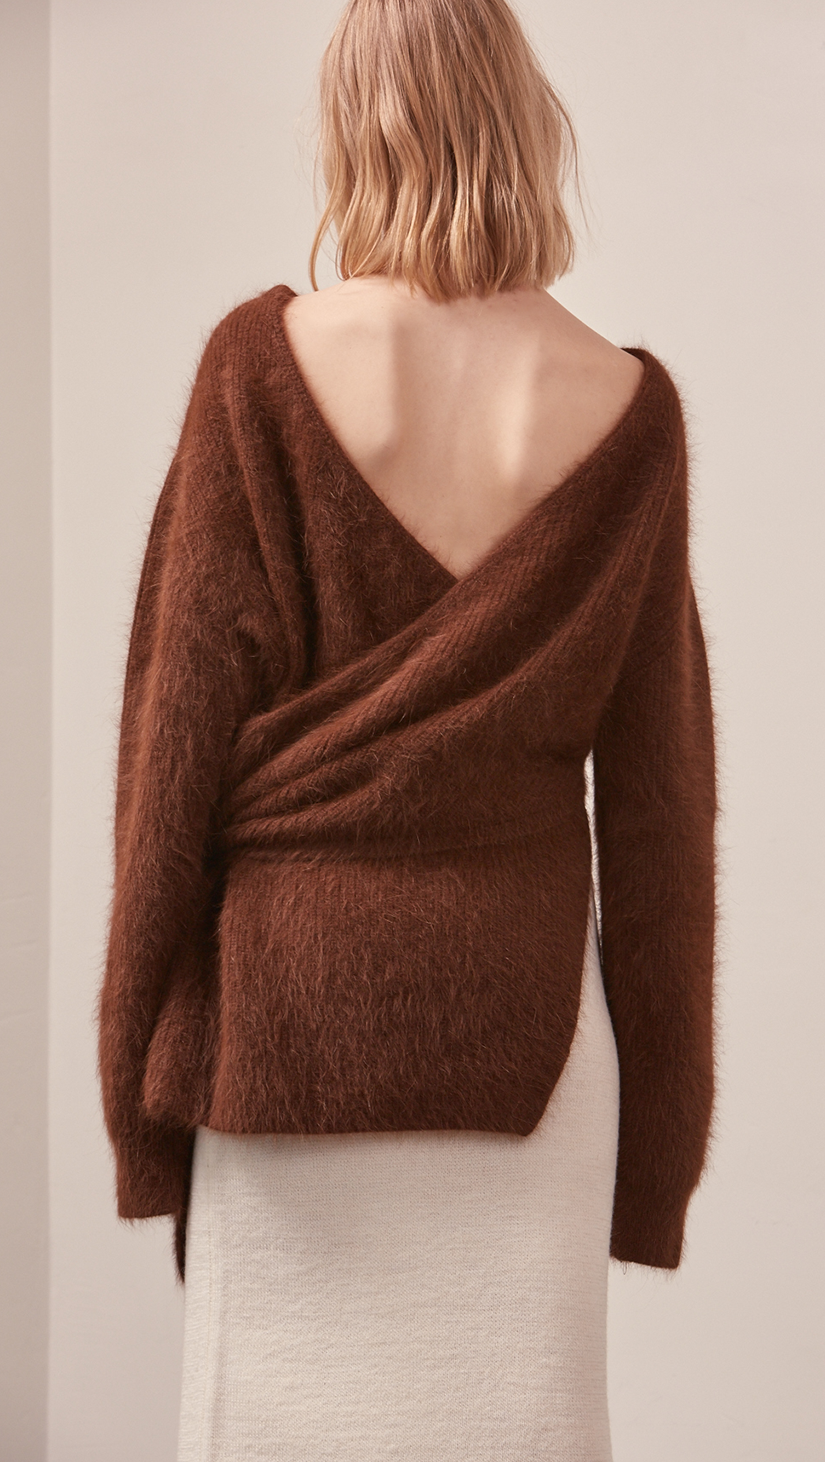 The Amuza Sweater in dark brown. Features chunky knit wrap-style sweater in dark brown alpaca and angora blend. Long sleeves, V-neckline (can be styled backward), self-tie wraps front around the waist, side slits. Pull on. Mid-weight. Oversized silhouette.